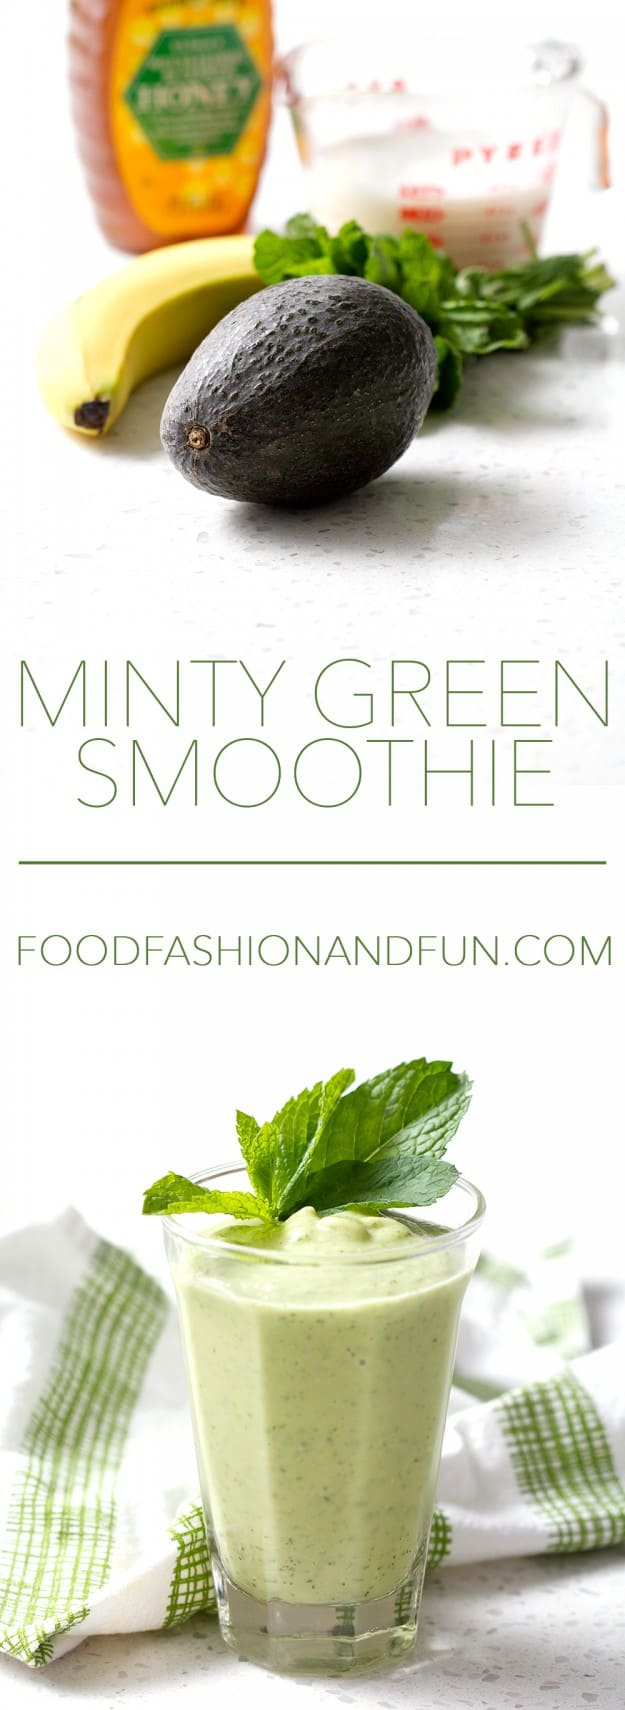 Healthy green smoothie made with avocado but with a handful of mint thrown in for a slight kick. This recipe is allergy friendly (gluten, dairy, shellfish, nut, egg, and soy free) and suits the autoimmune protocol diet (AIP), paleo and vegan diets.